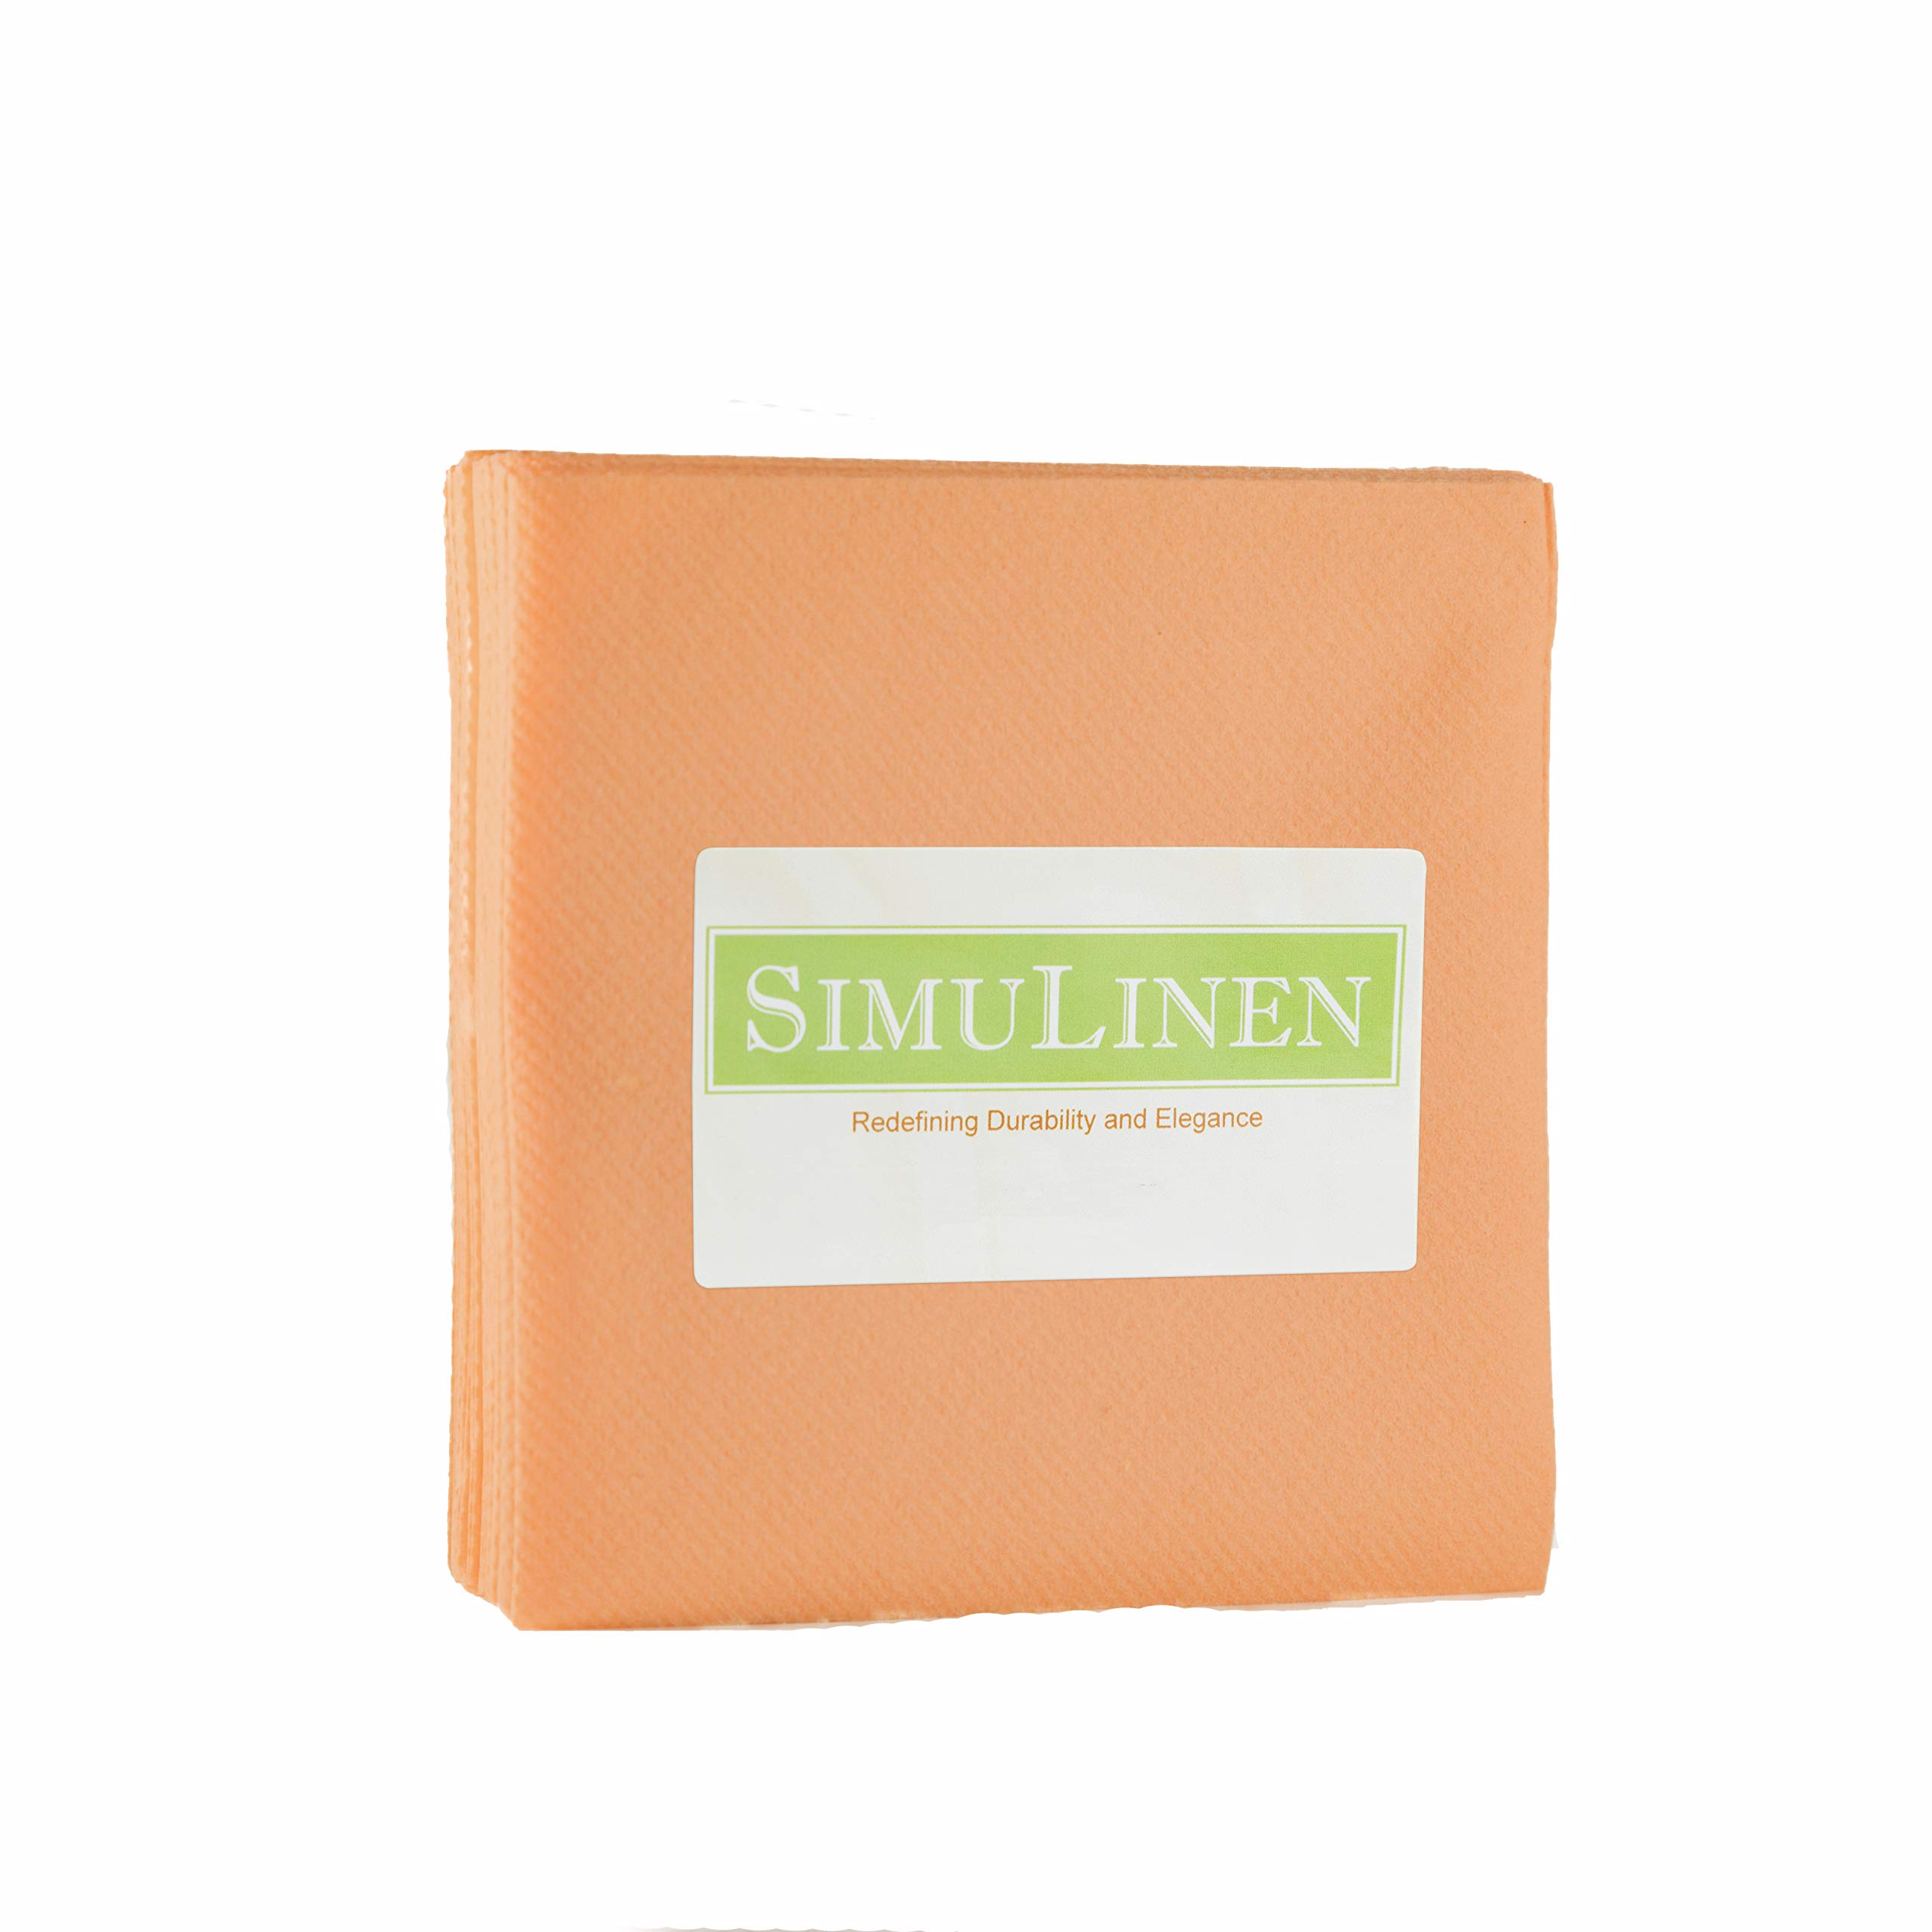 SimuLinen Cocktail & Party Napkins – APRICOT Beverage Napkins – Decorative, Absorbent, Cloth Like & Disposable – (Pack of 250)